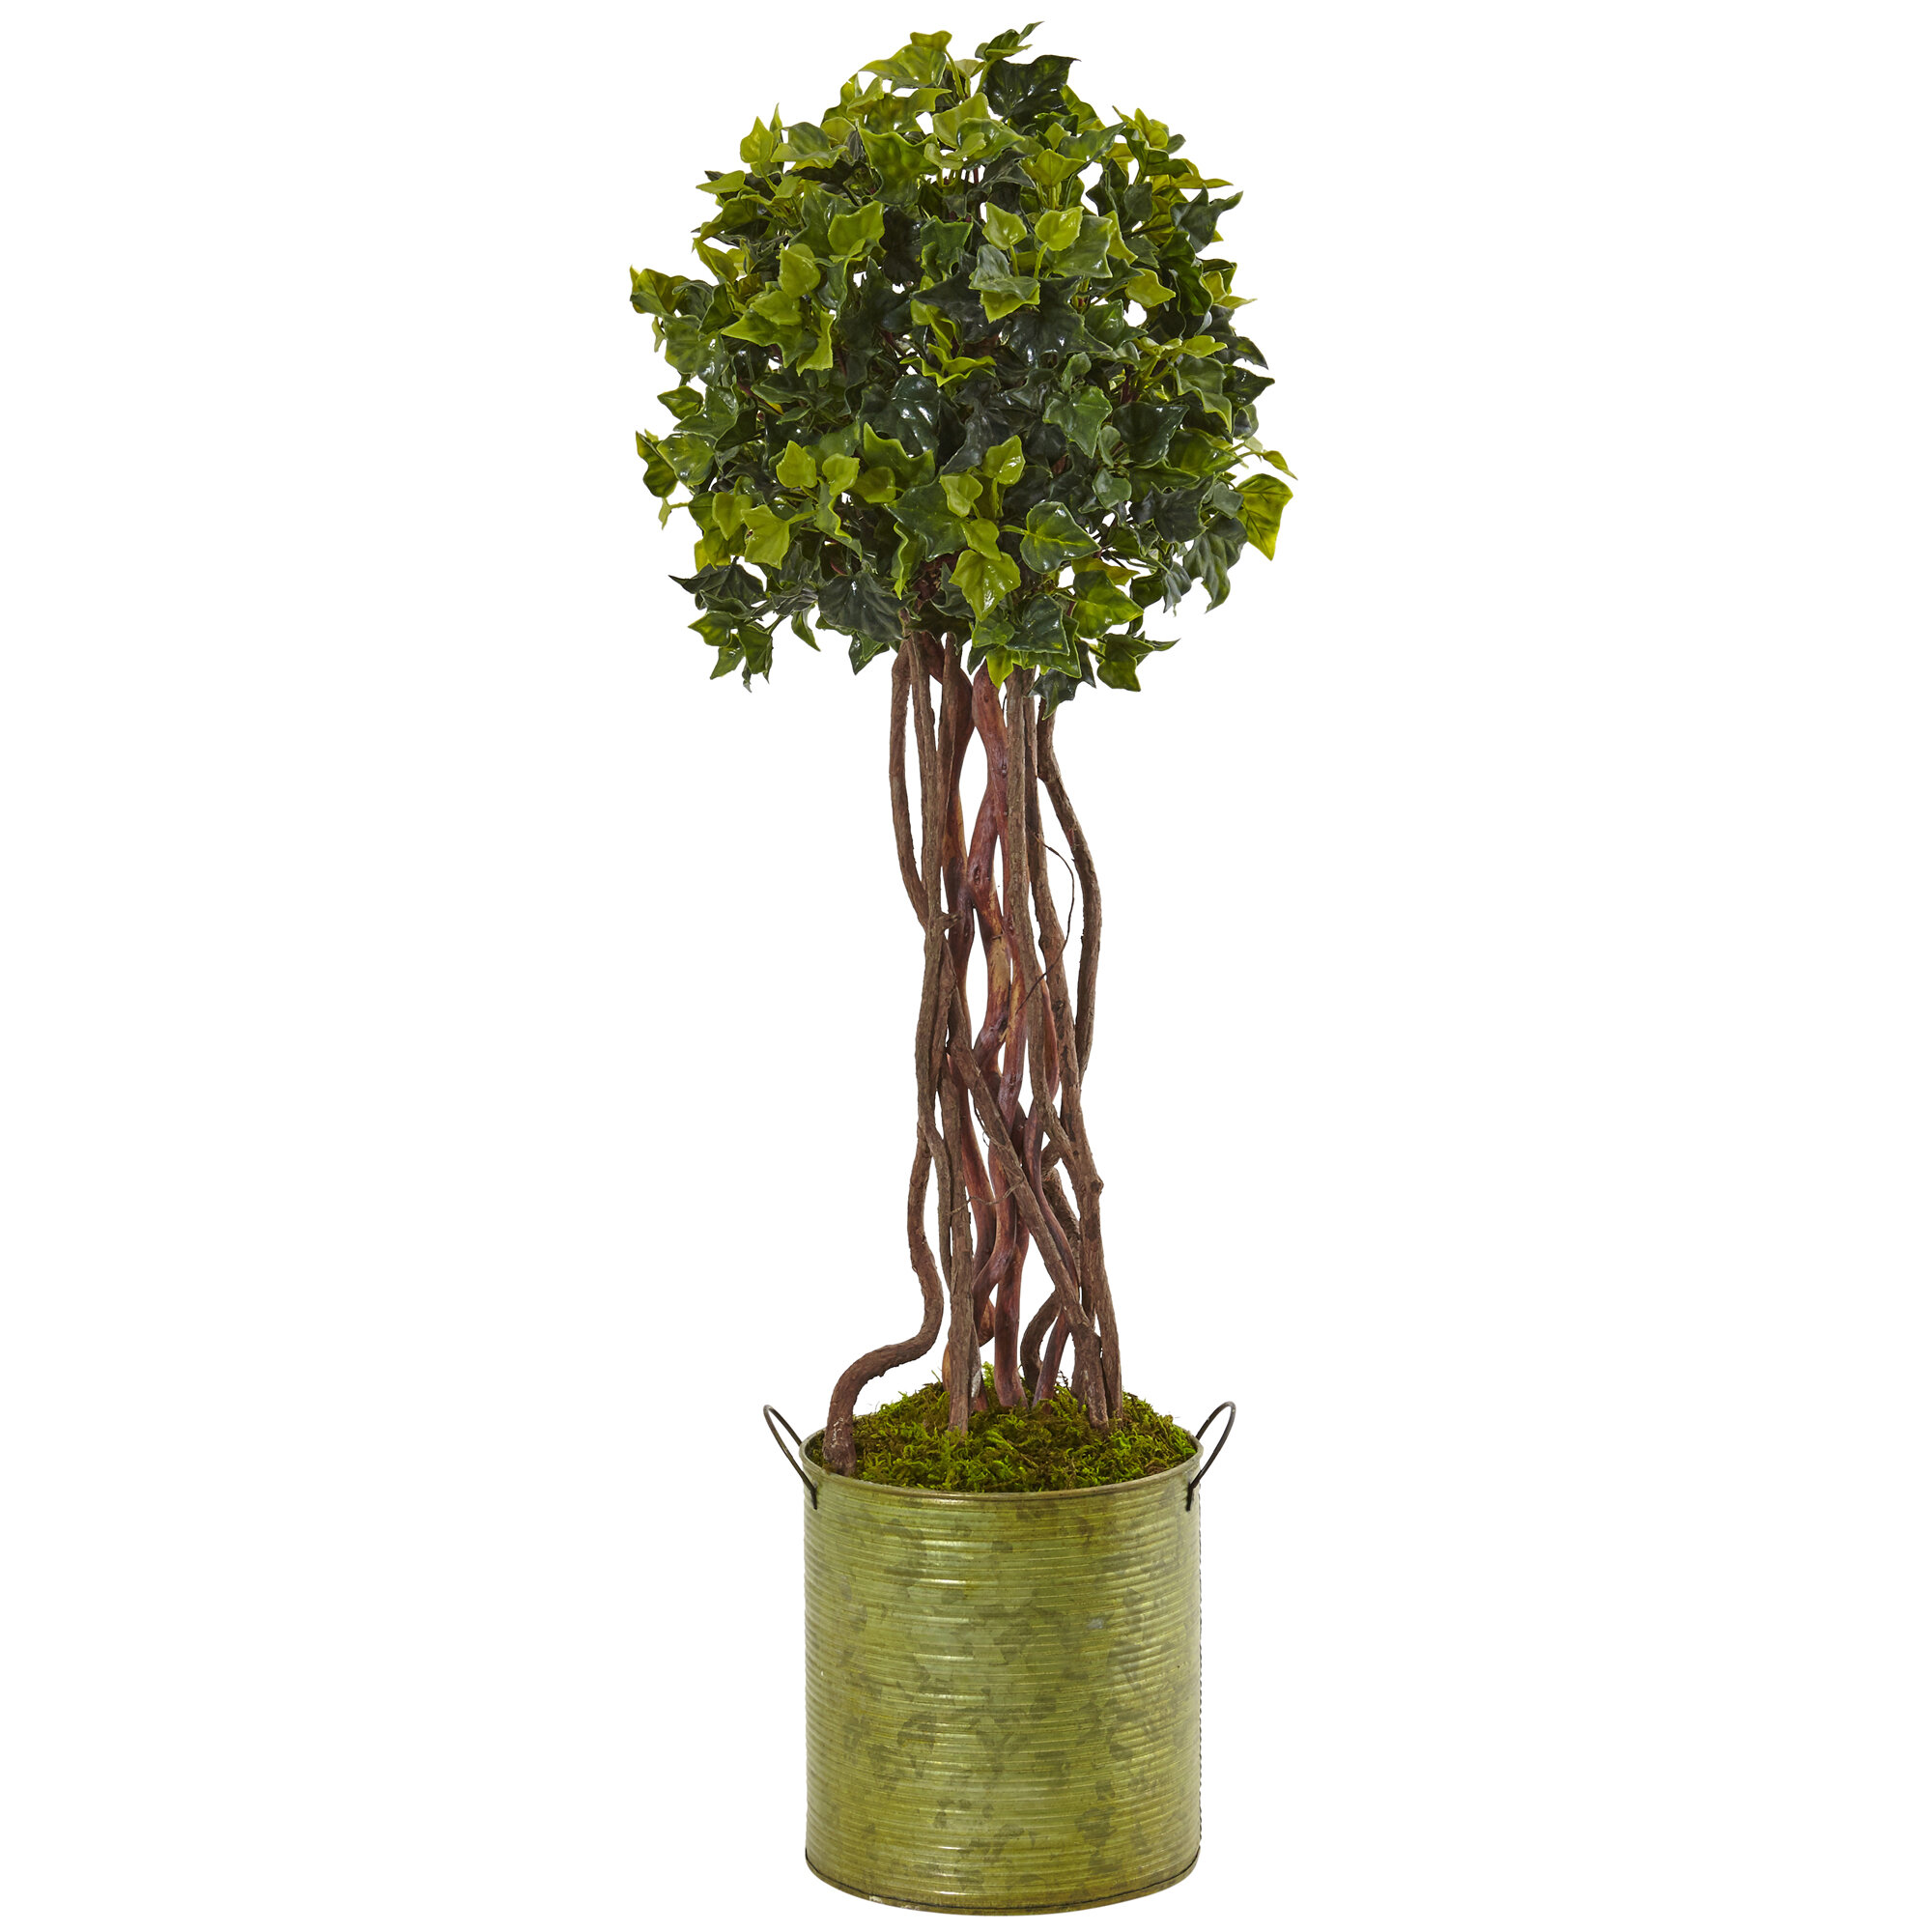 Gracie Oaks 22 5 Artificial Ivy Floor Ivy Topiary In Pot Wayfair